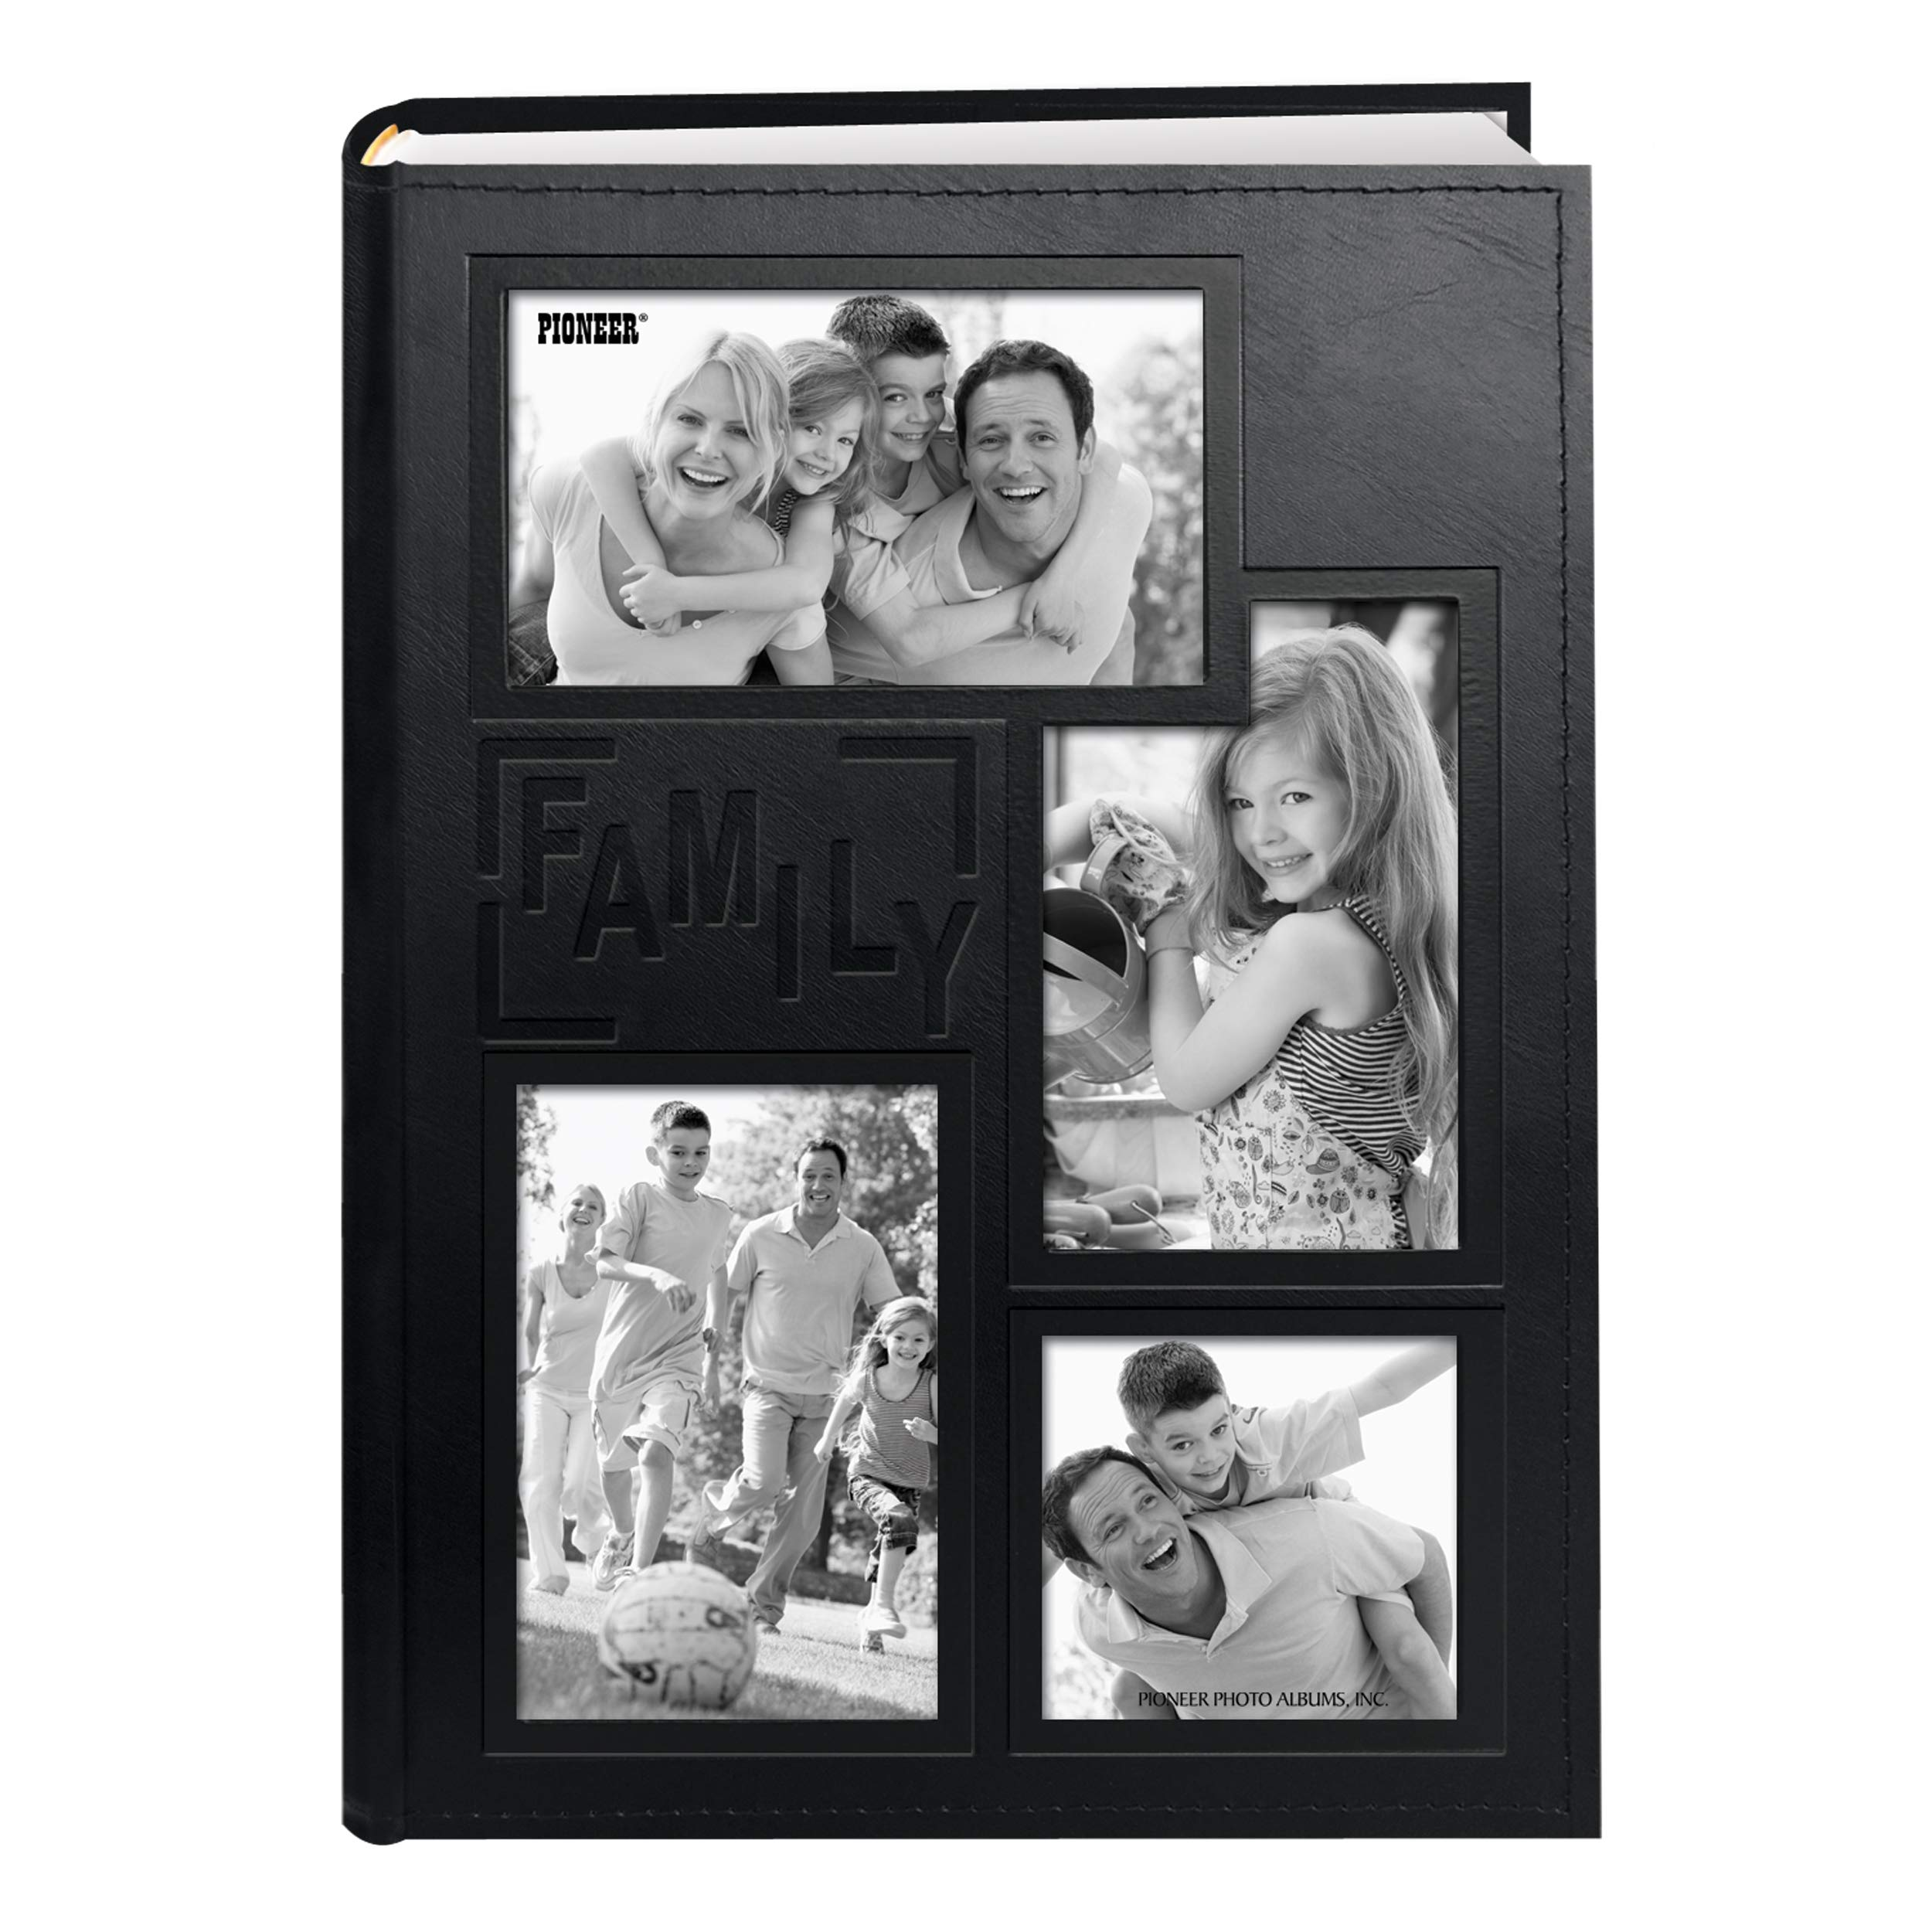 Pioneer Collage Frame Embossed Family Sewn Leatherette Cover 300 Pocket Photo Album, Black by Pioneer Photo Albums